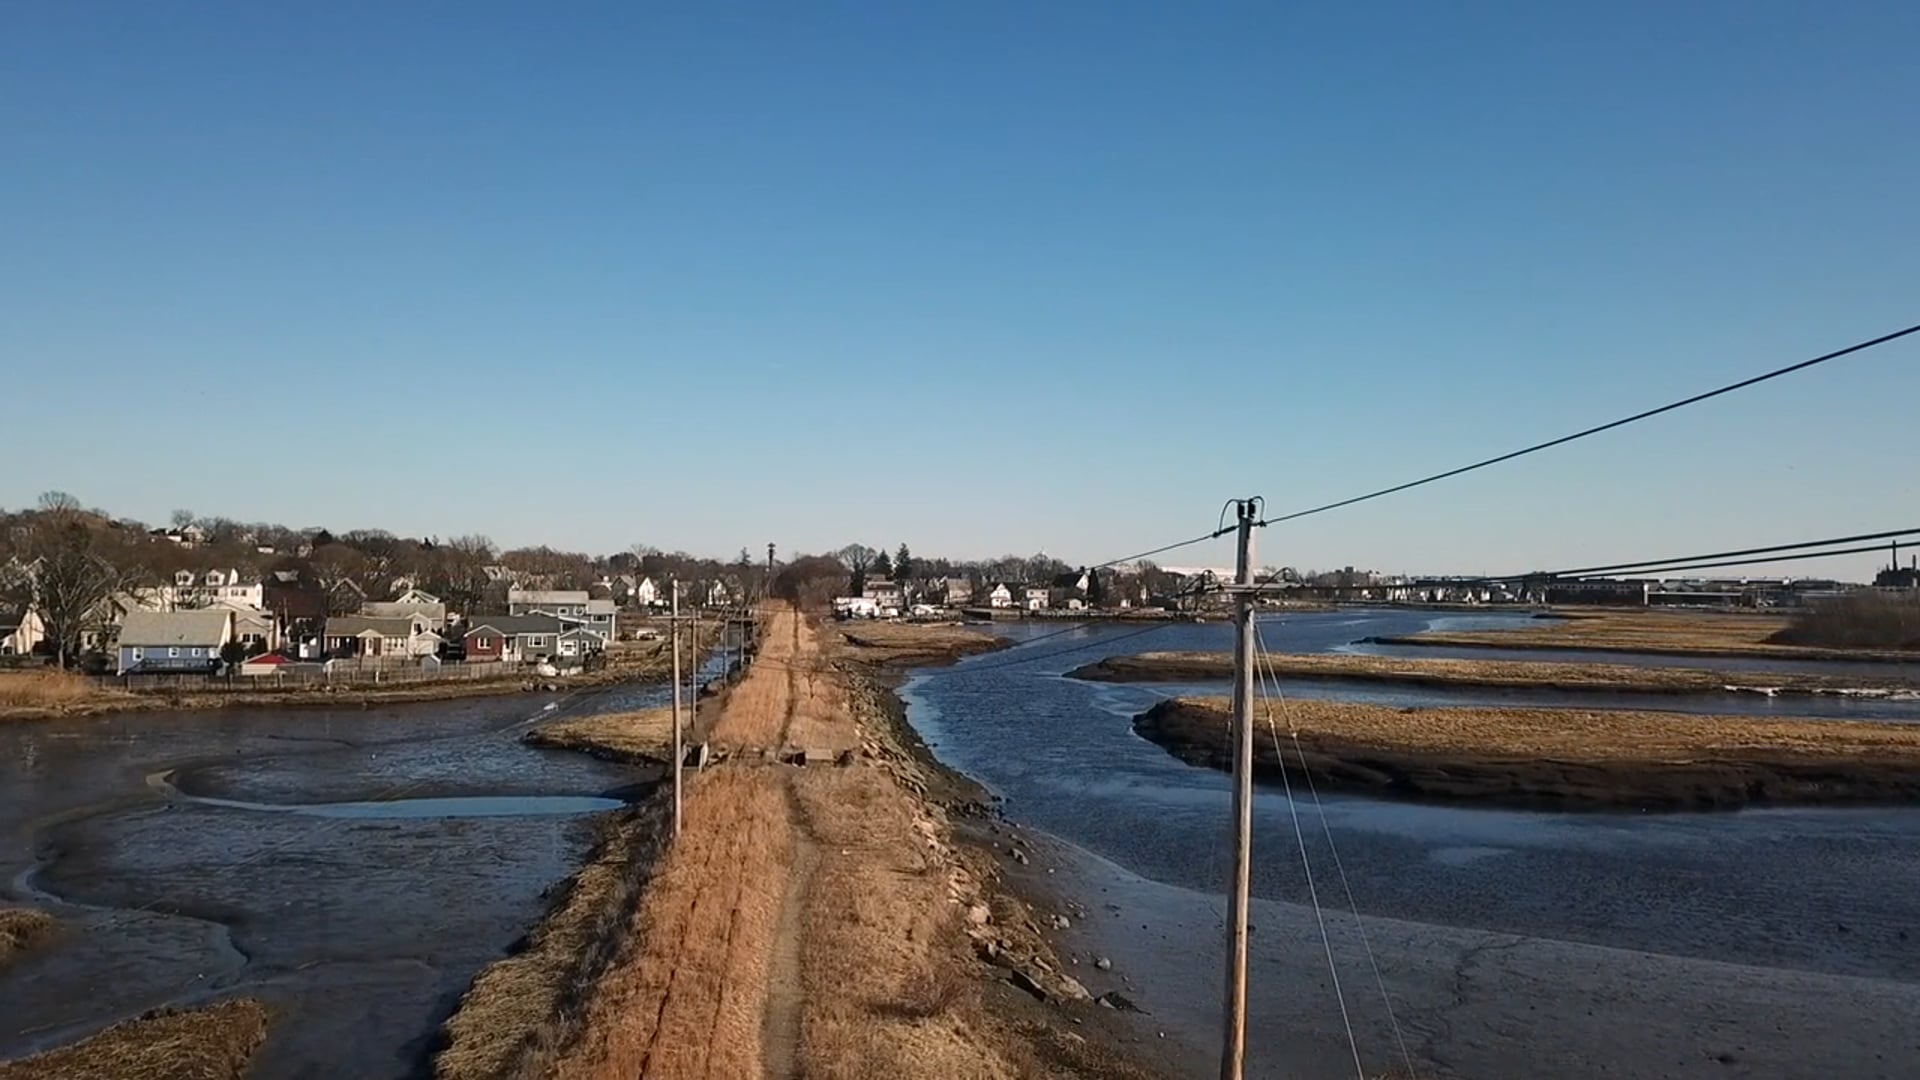 The Community Path of Lynn: A Vision to Build a Stronger Community